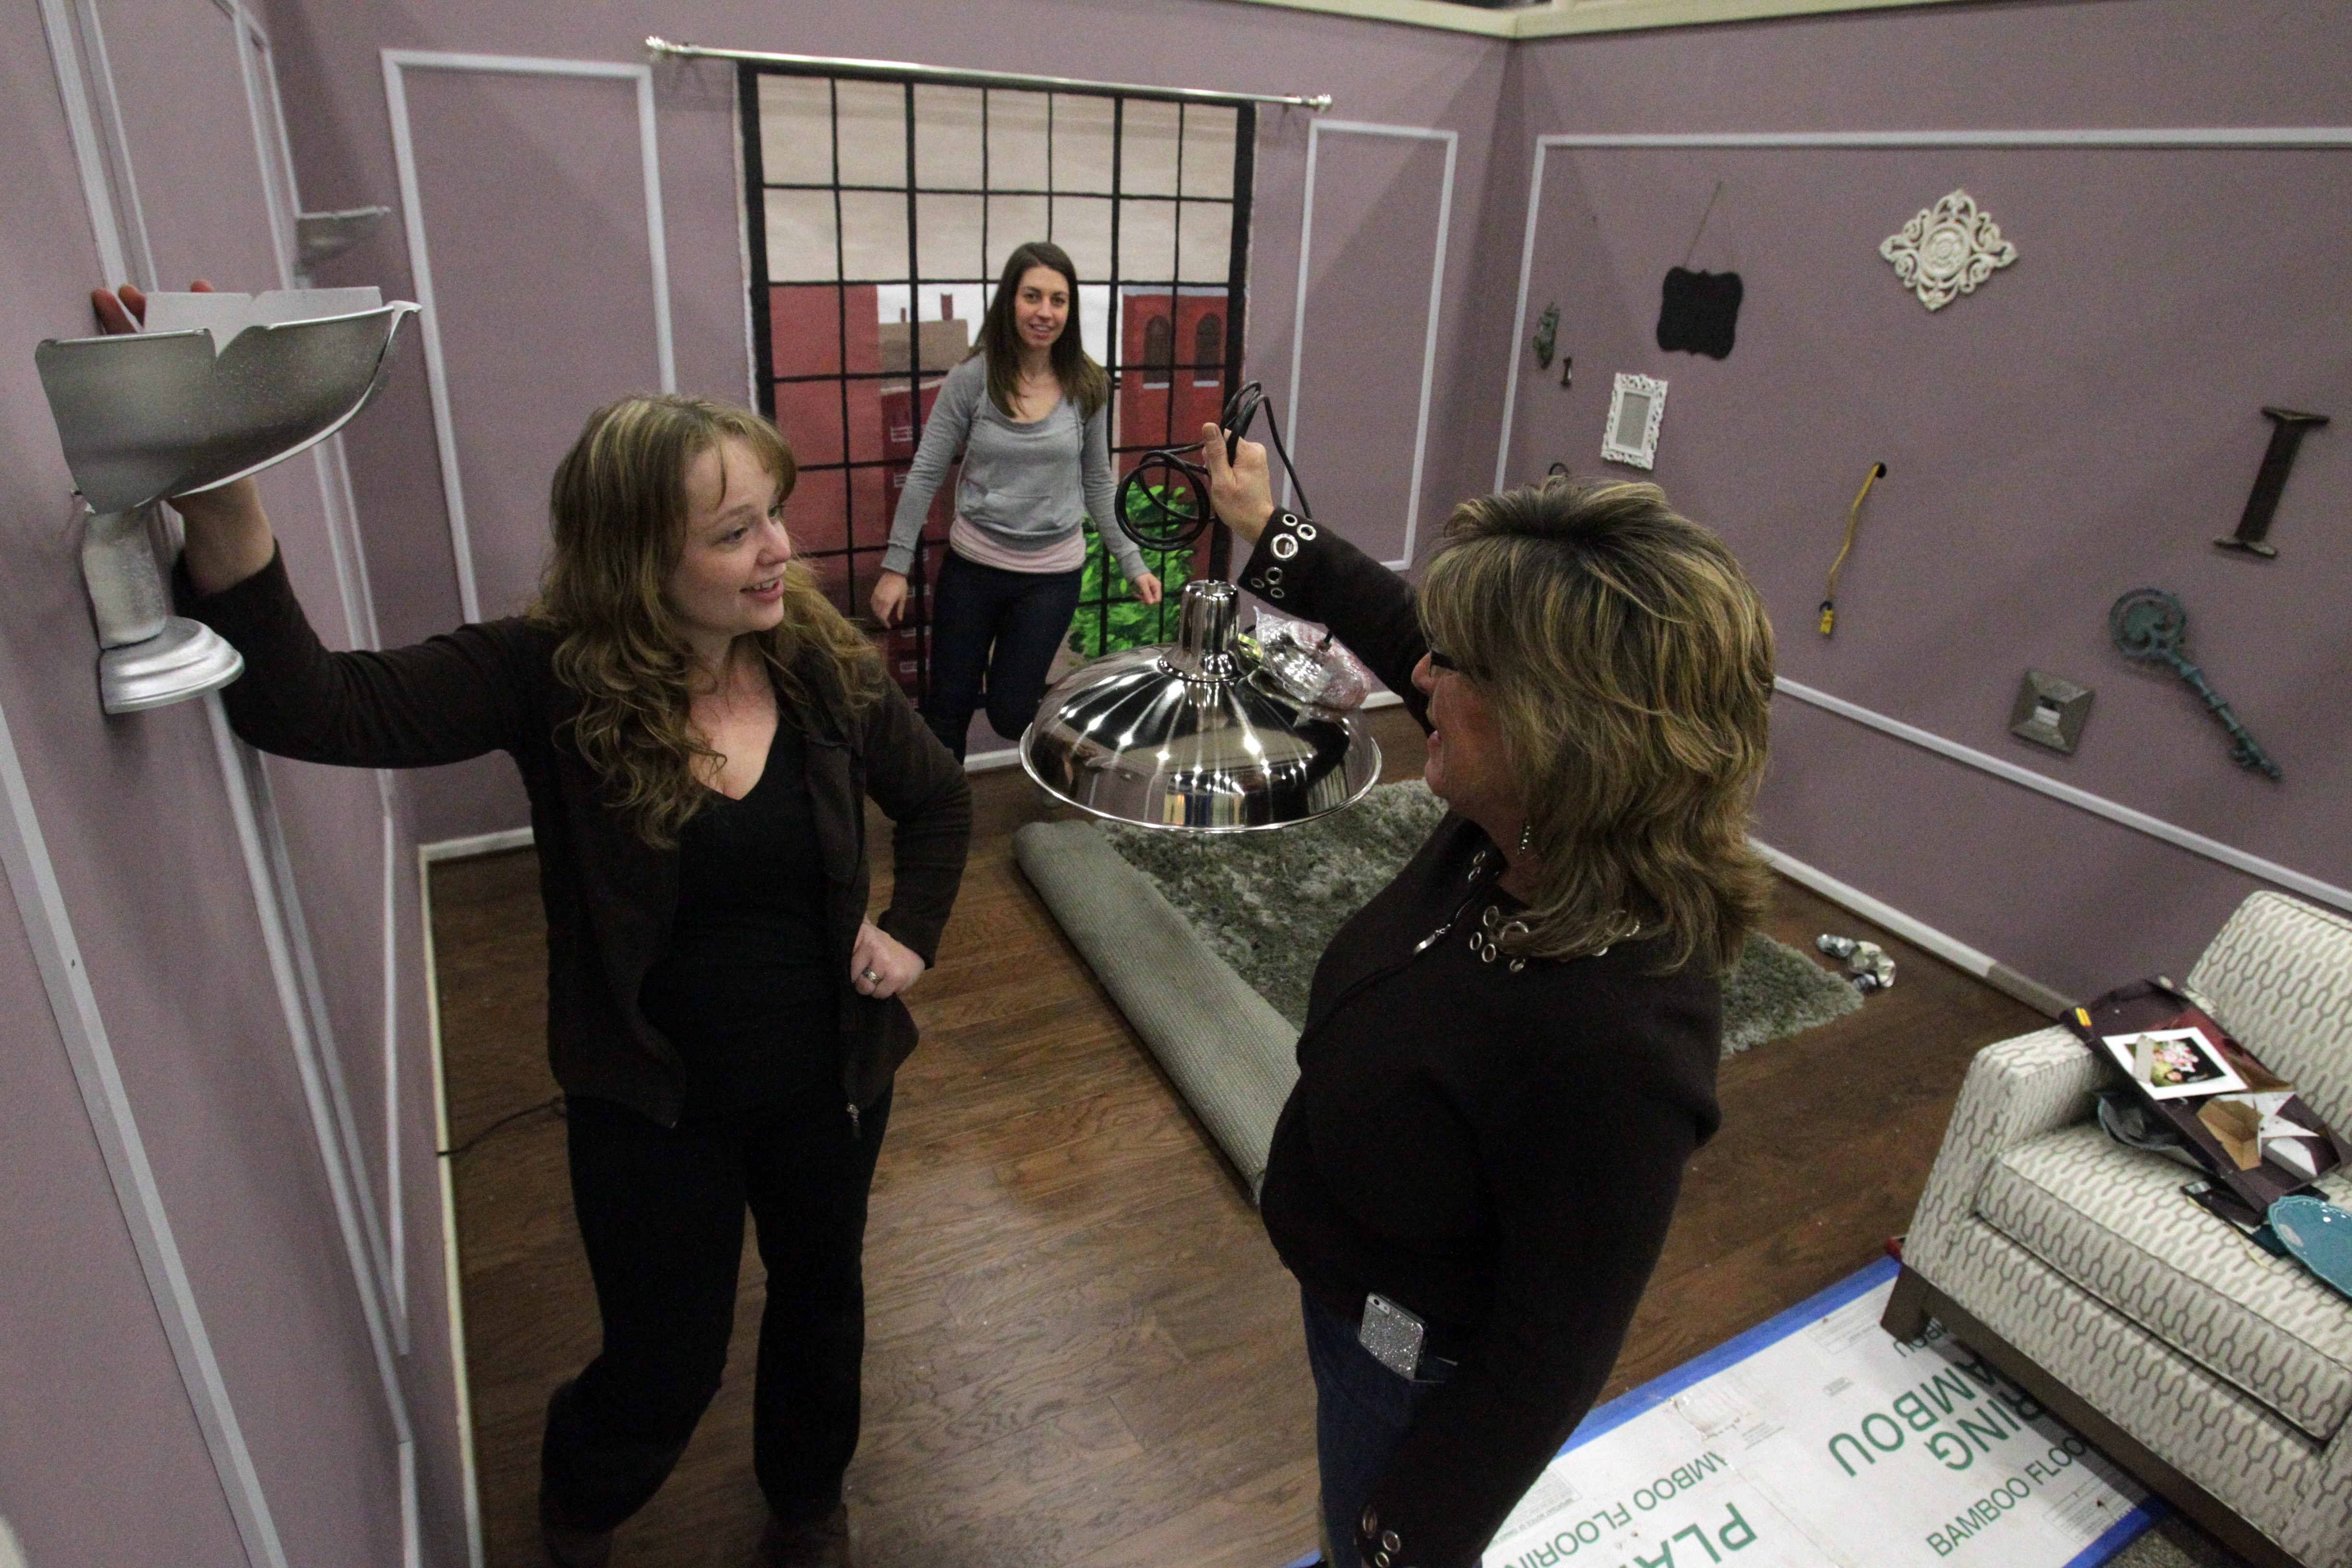 For the second year, the Interior Design Association of WNY is taking on the White Room Challenge at the Buffalo Home Show. Designer Laurel I. Swartz, above left, shows IDA President Michelle Peller White the wall sconce she made from the overhead shiny metal light. The original light is one of the mandatory design elements.